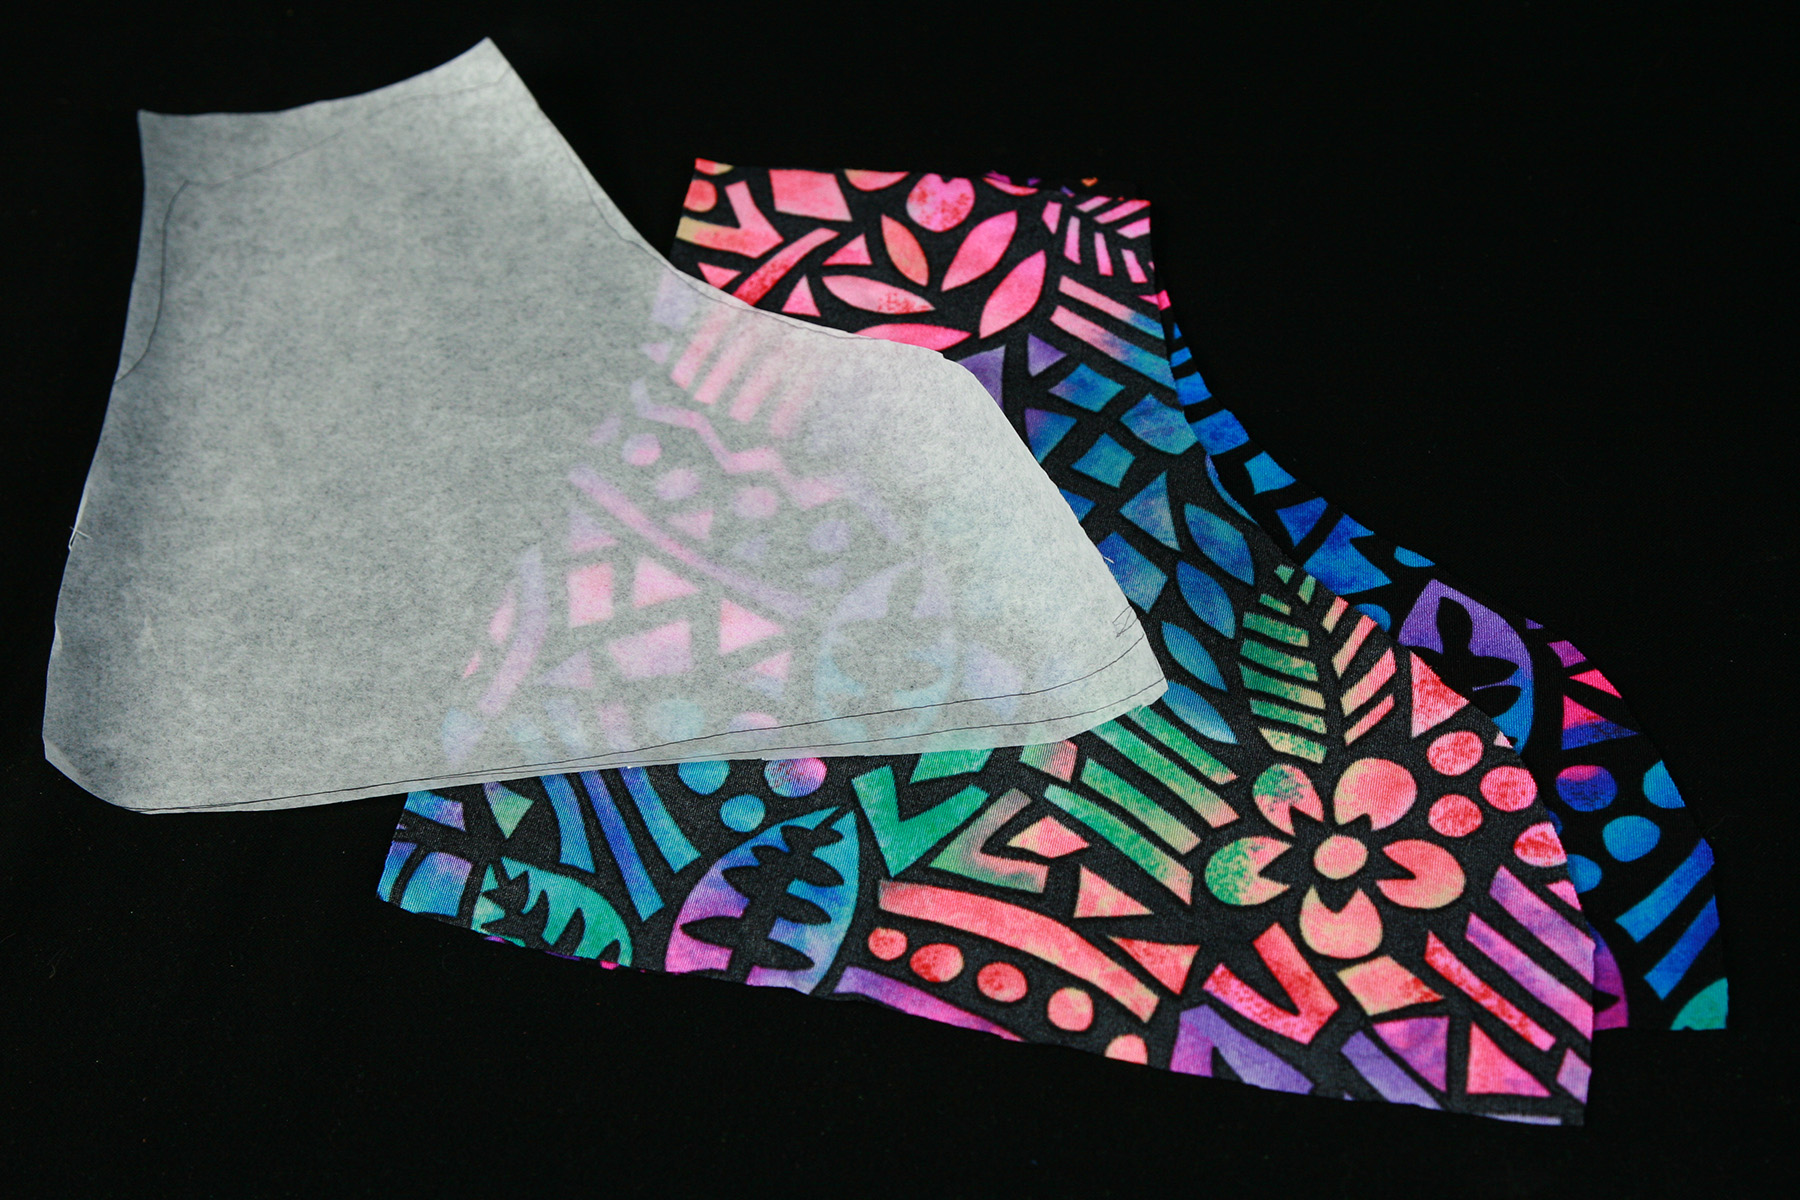 A skate cover pattern cut from translucent white paper rests against a piece of brightly coloured fabric that has been cut to shape with the pattern pictured.